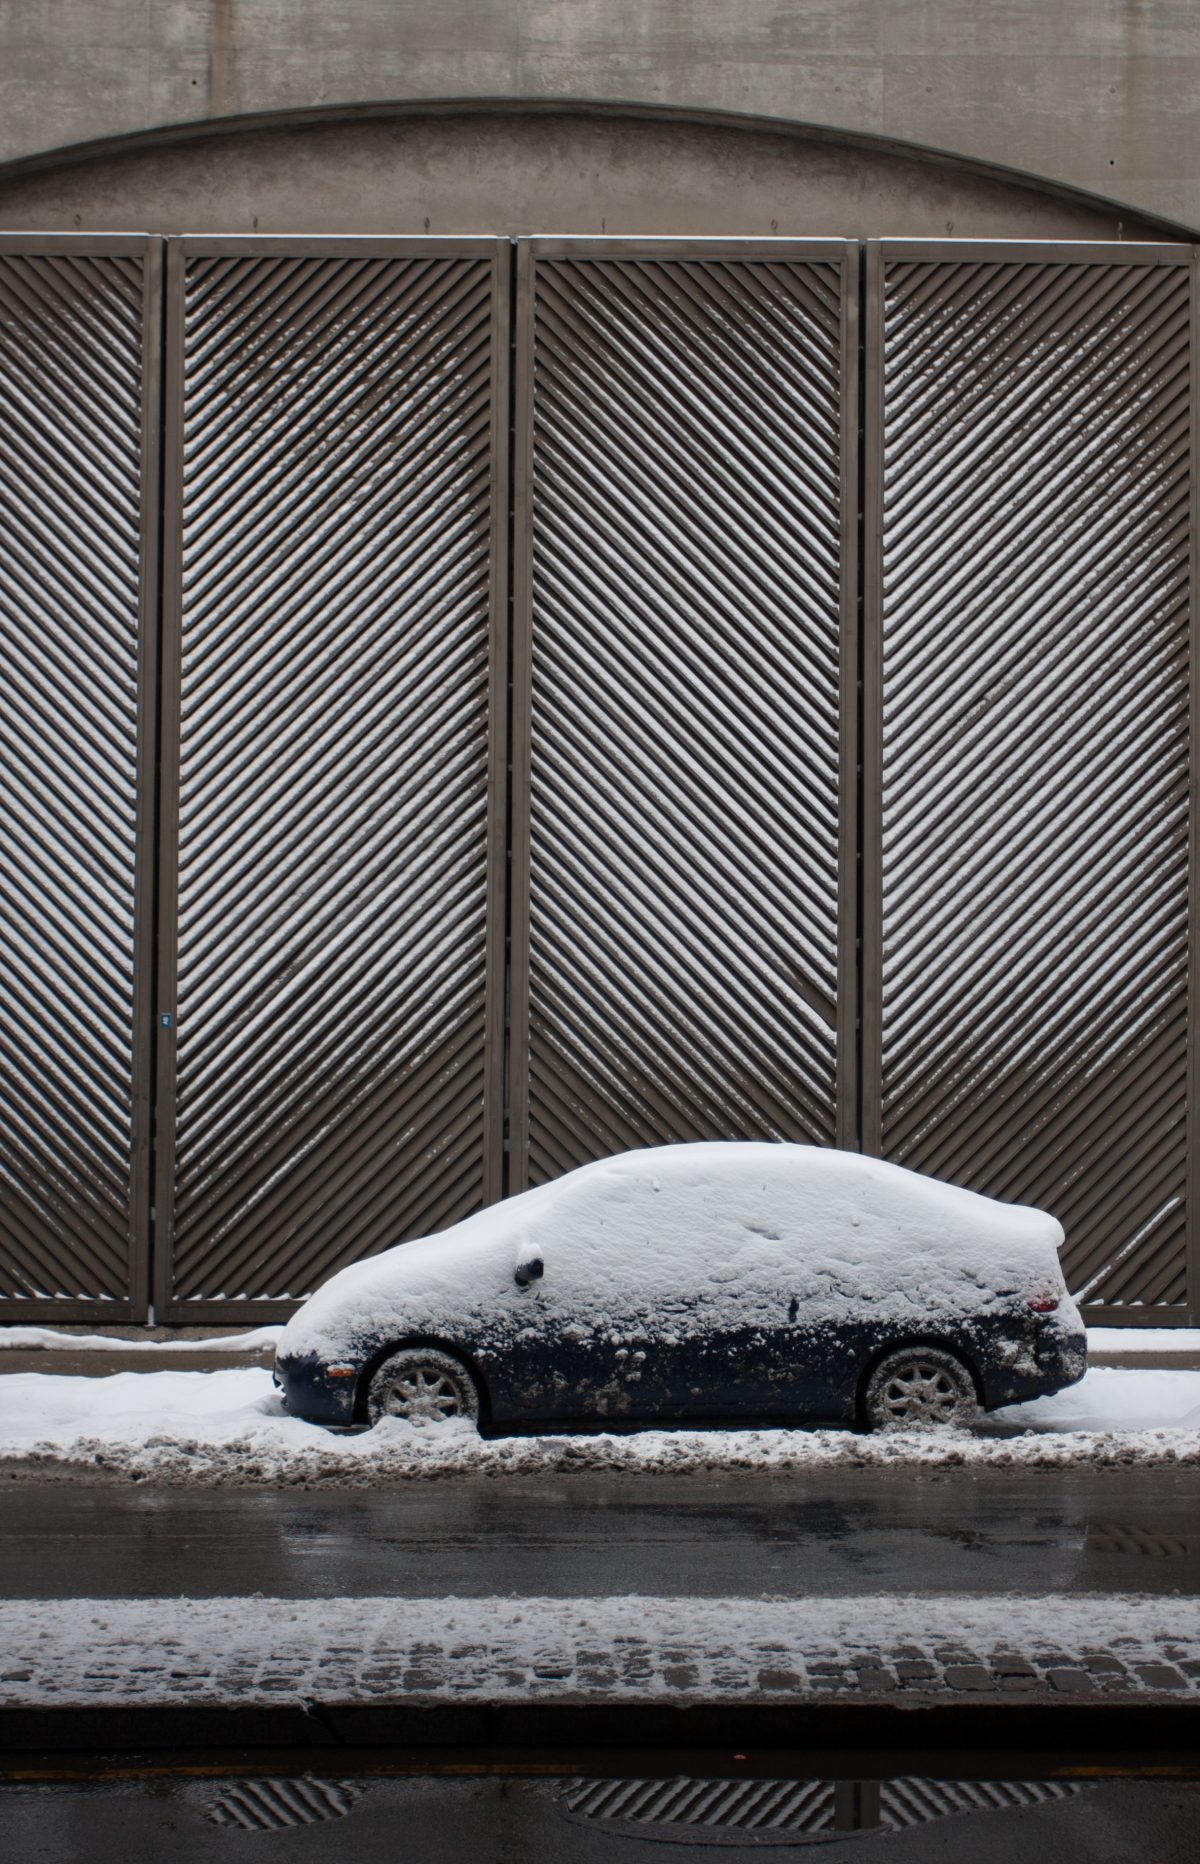 Juno Storm, snow, vehicle, door